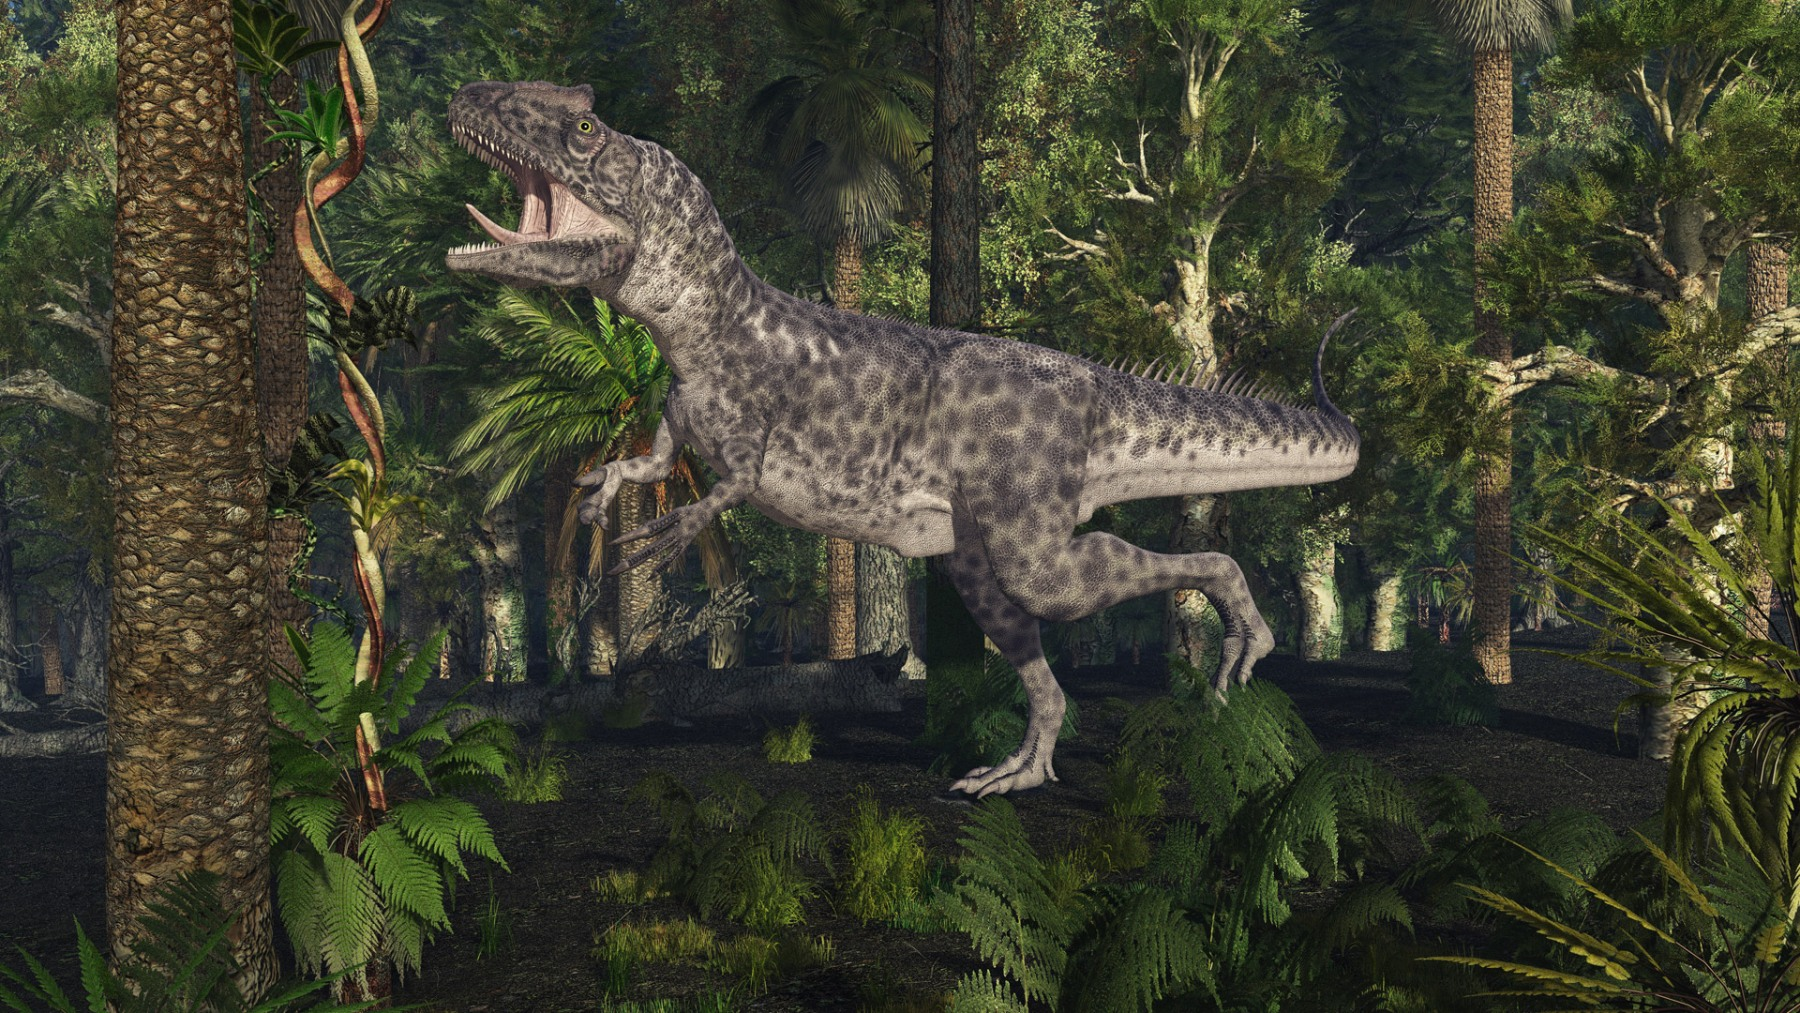 ALLOSAURUS IN THE JUNGLE